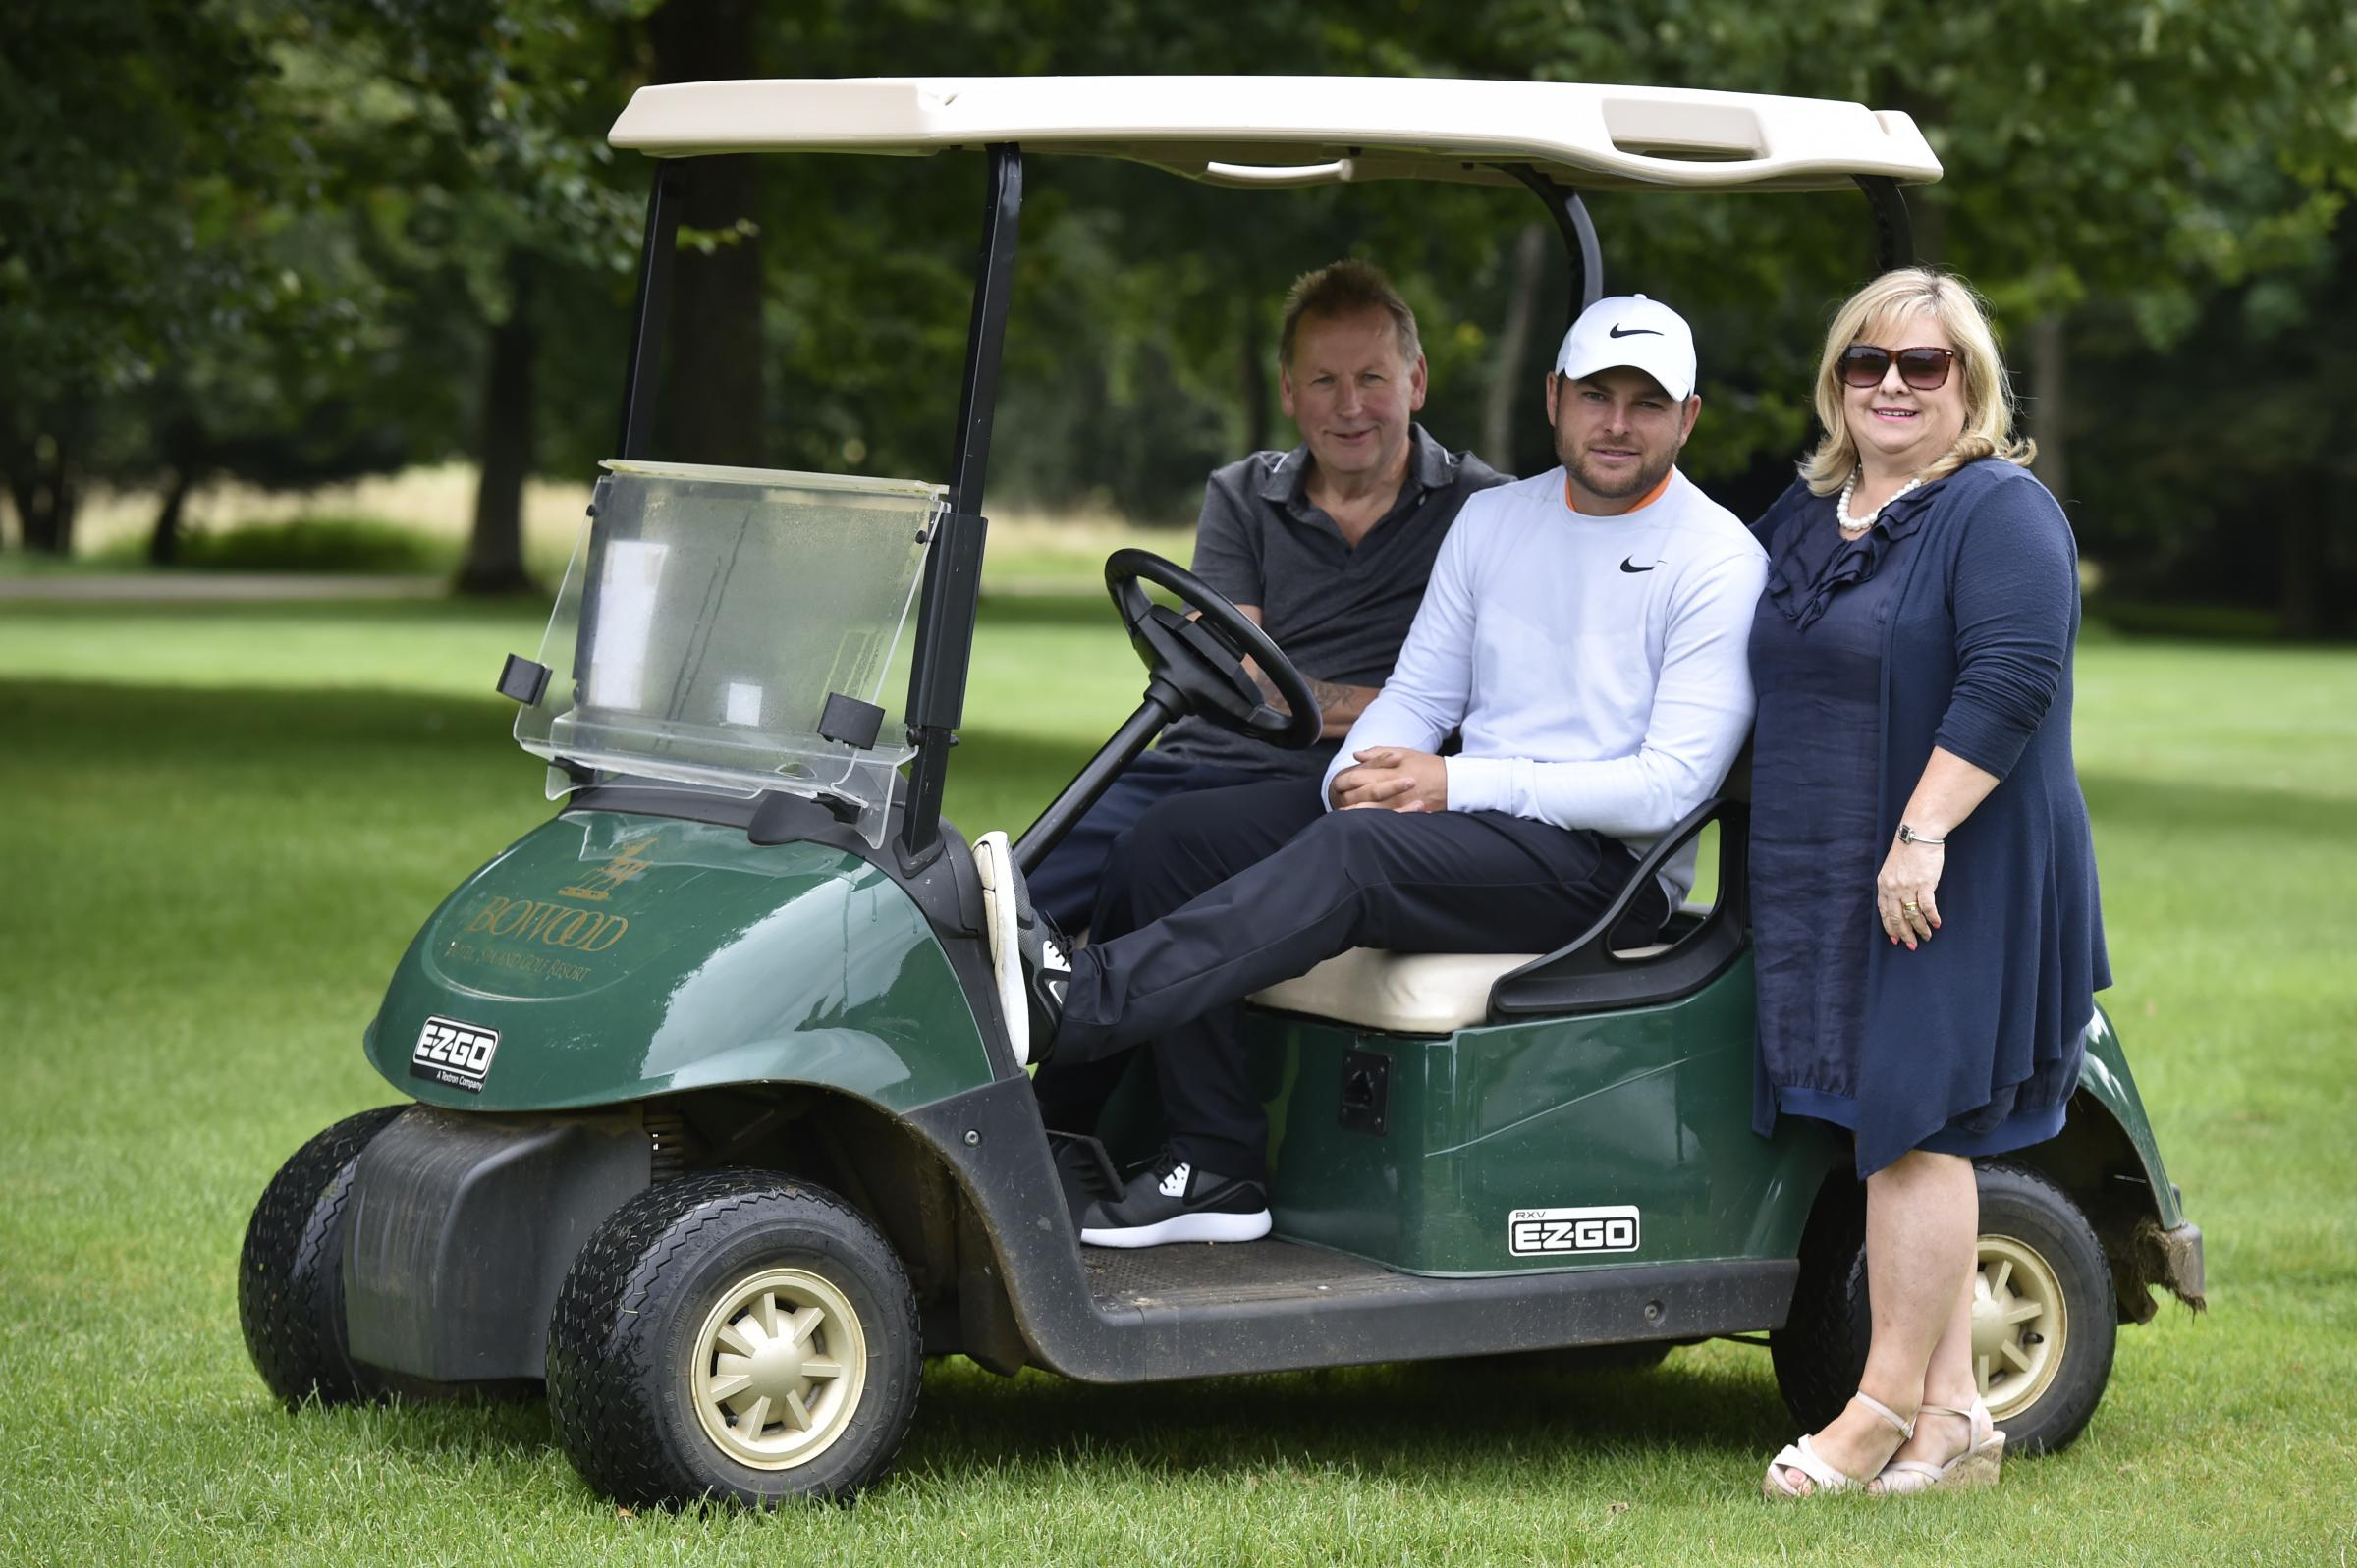 Jordan Smith (centre) with dad Martin and mum Emma Smith at Bowood Golf Club, following his top-10 finish at the US PGA Championship - his first-ever appearance in one of golf's four major championships